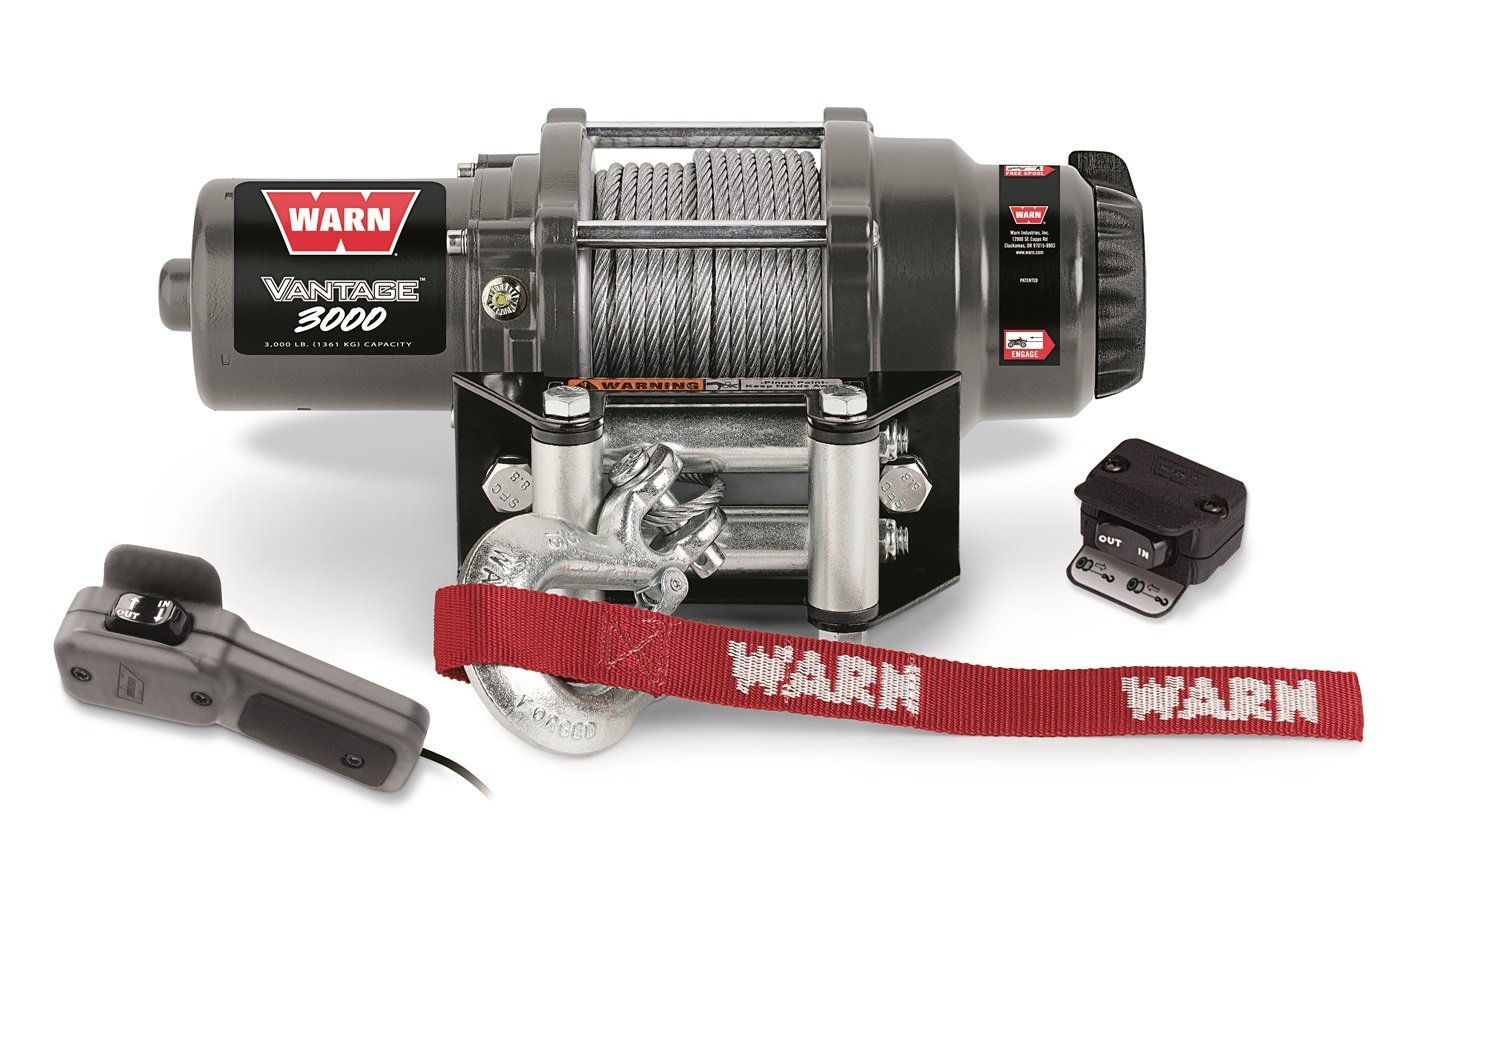 hight resolution of get quotations warn 99388 vantage 3000 winch 3000 lbs 1361 kg 12v permanent magnet motor 50